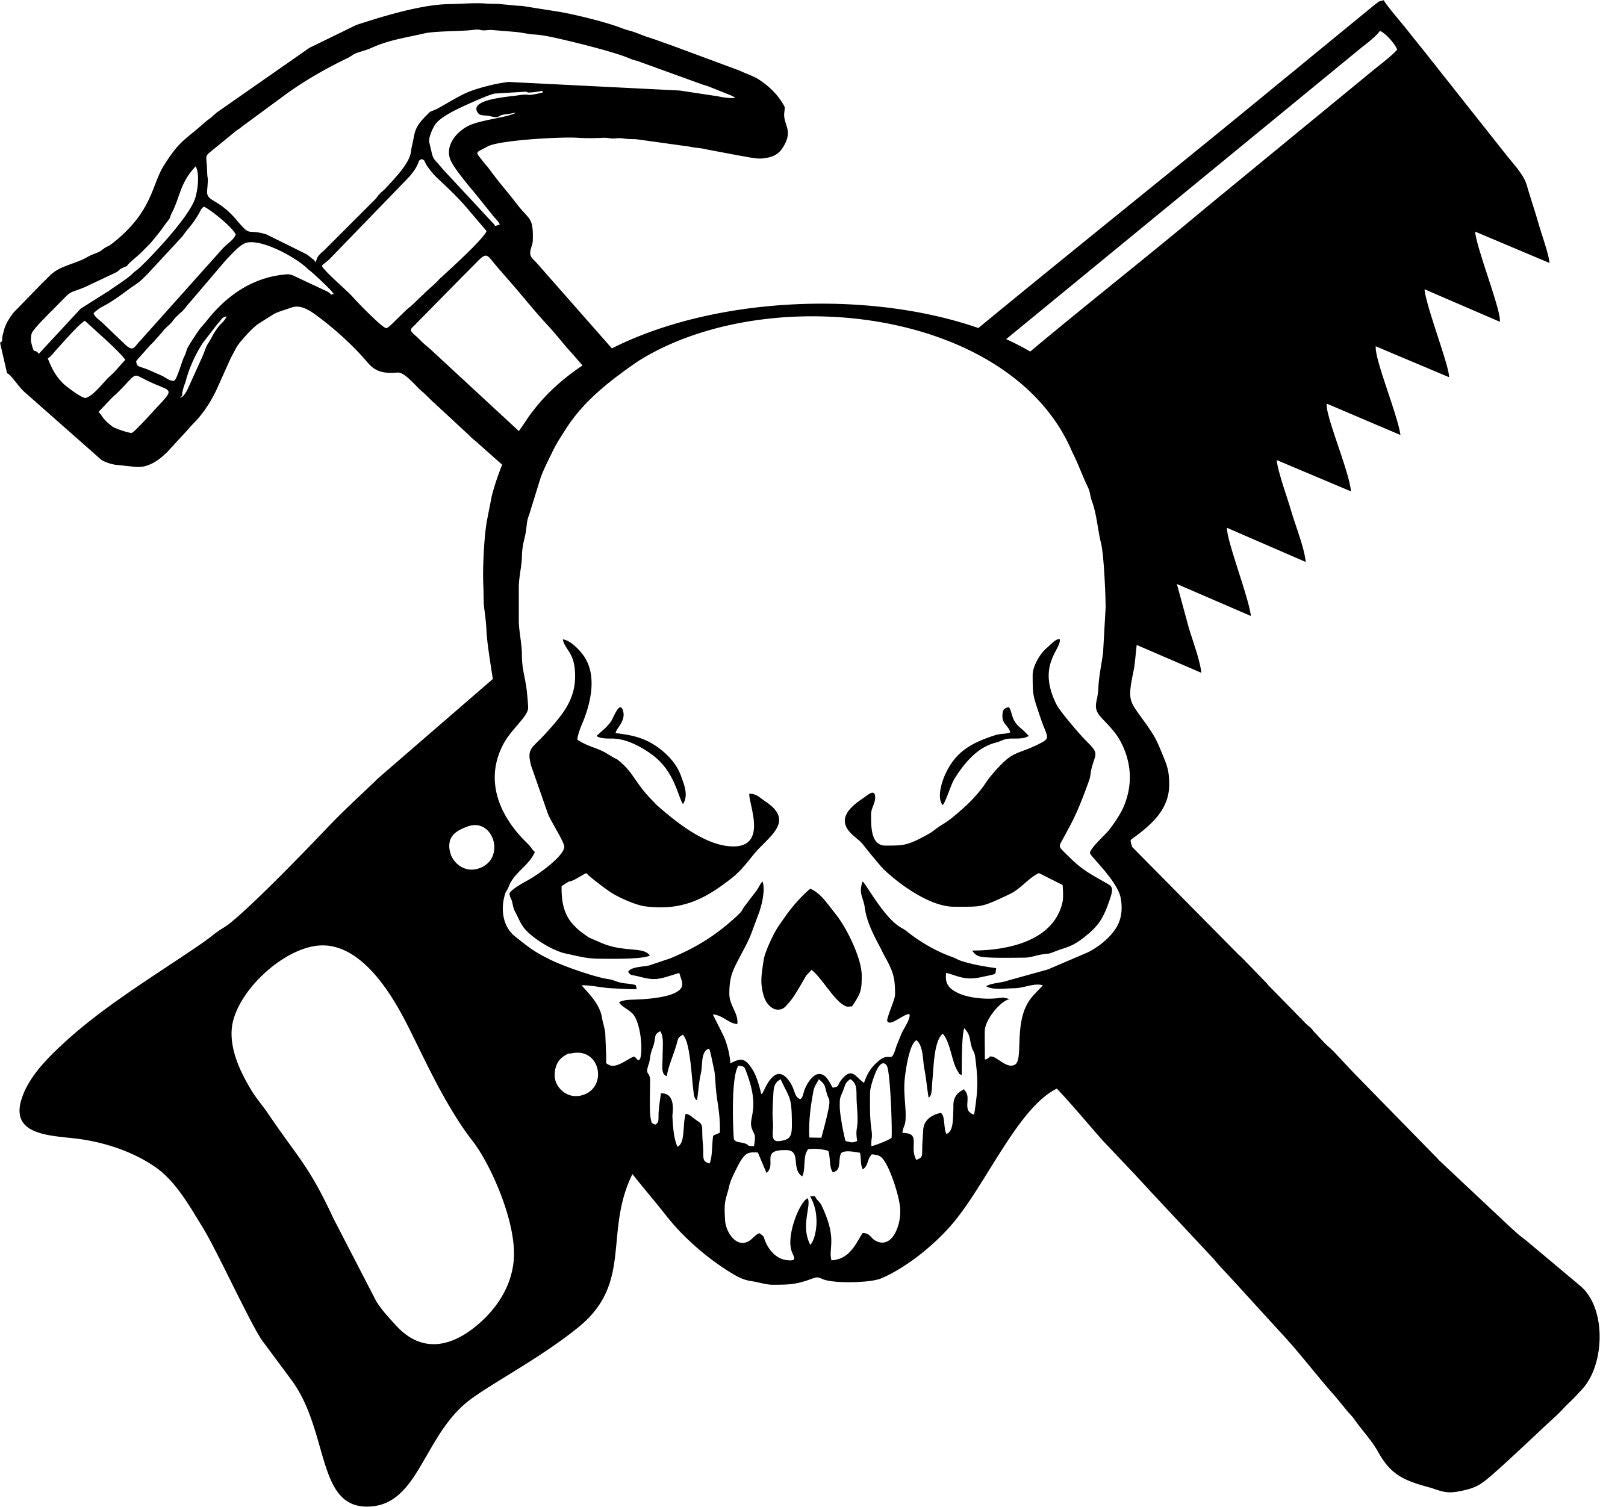 "Carpenter Skull Construction Worker Builder Car Truck Window Vinyl Decal Sticker - 6"" Long Edge"